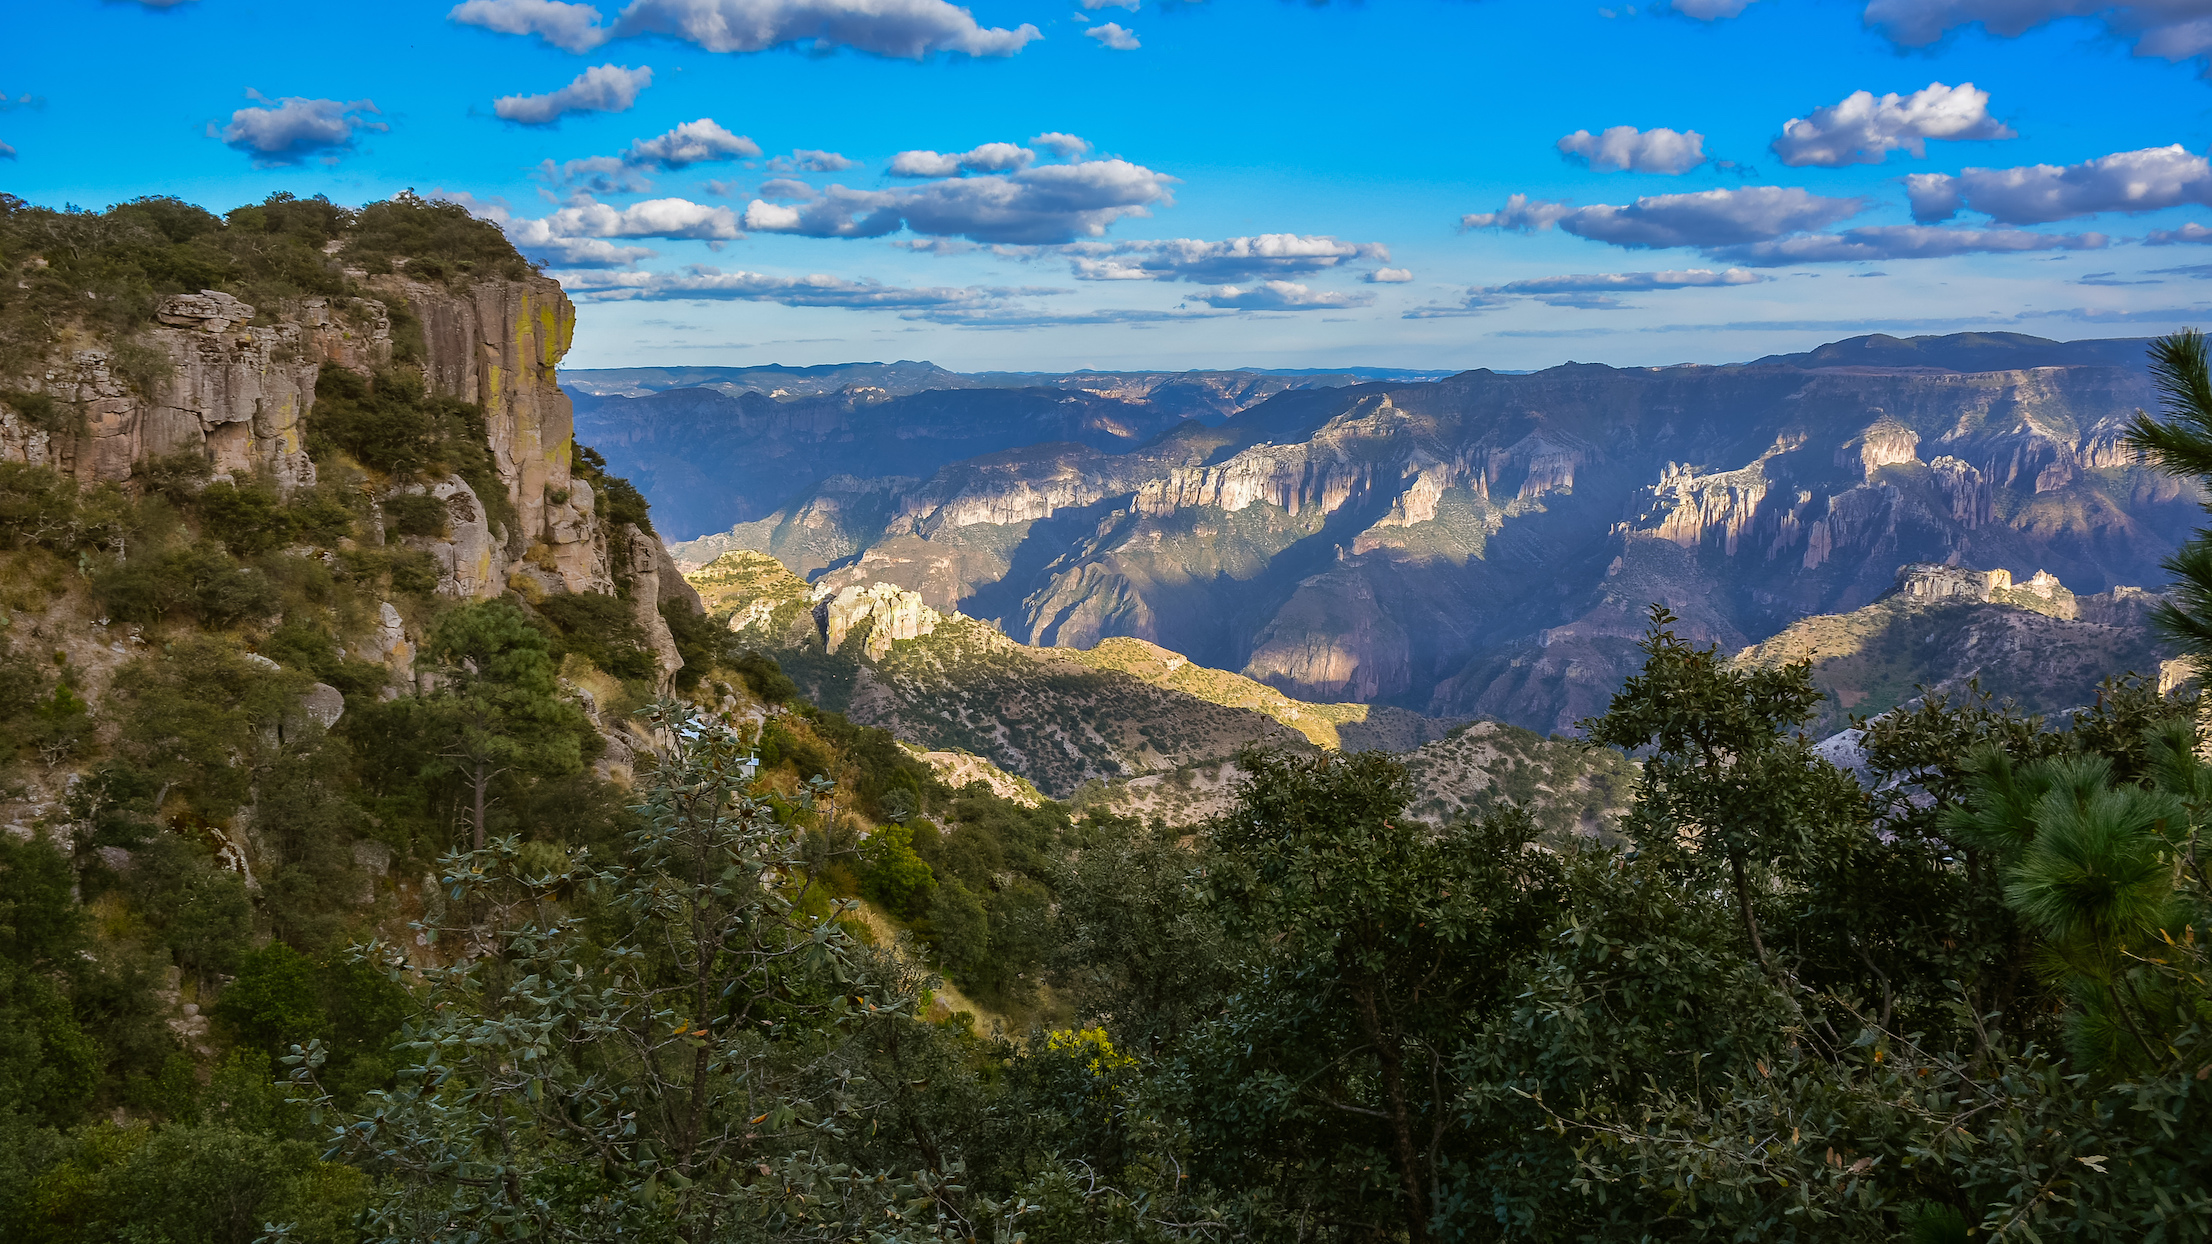 The Copper Canyon region of Chihuahua, Mexico is steeped in legends and mystery.The area is known for the Rarámuri, a group of indigenous people also known incorrectly as the Tarahumara.